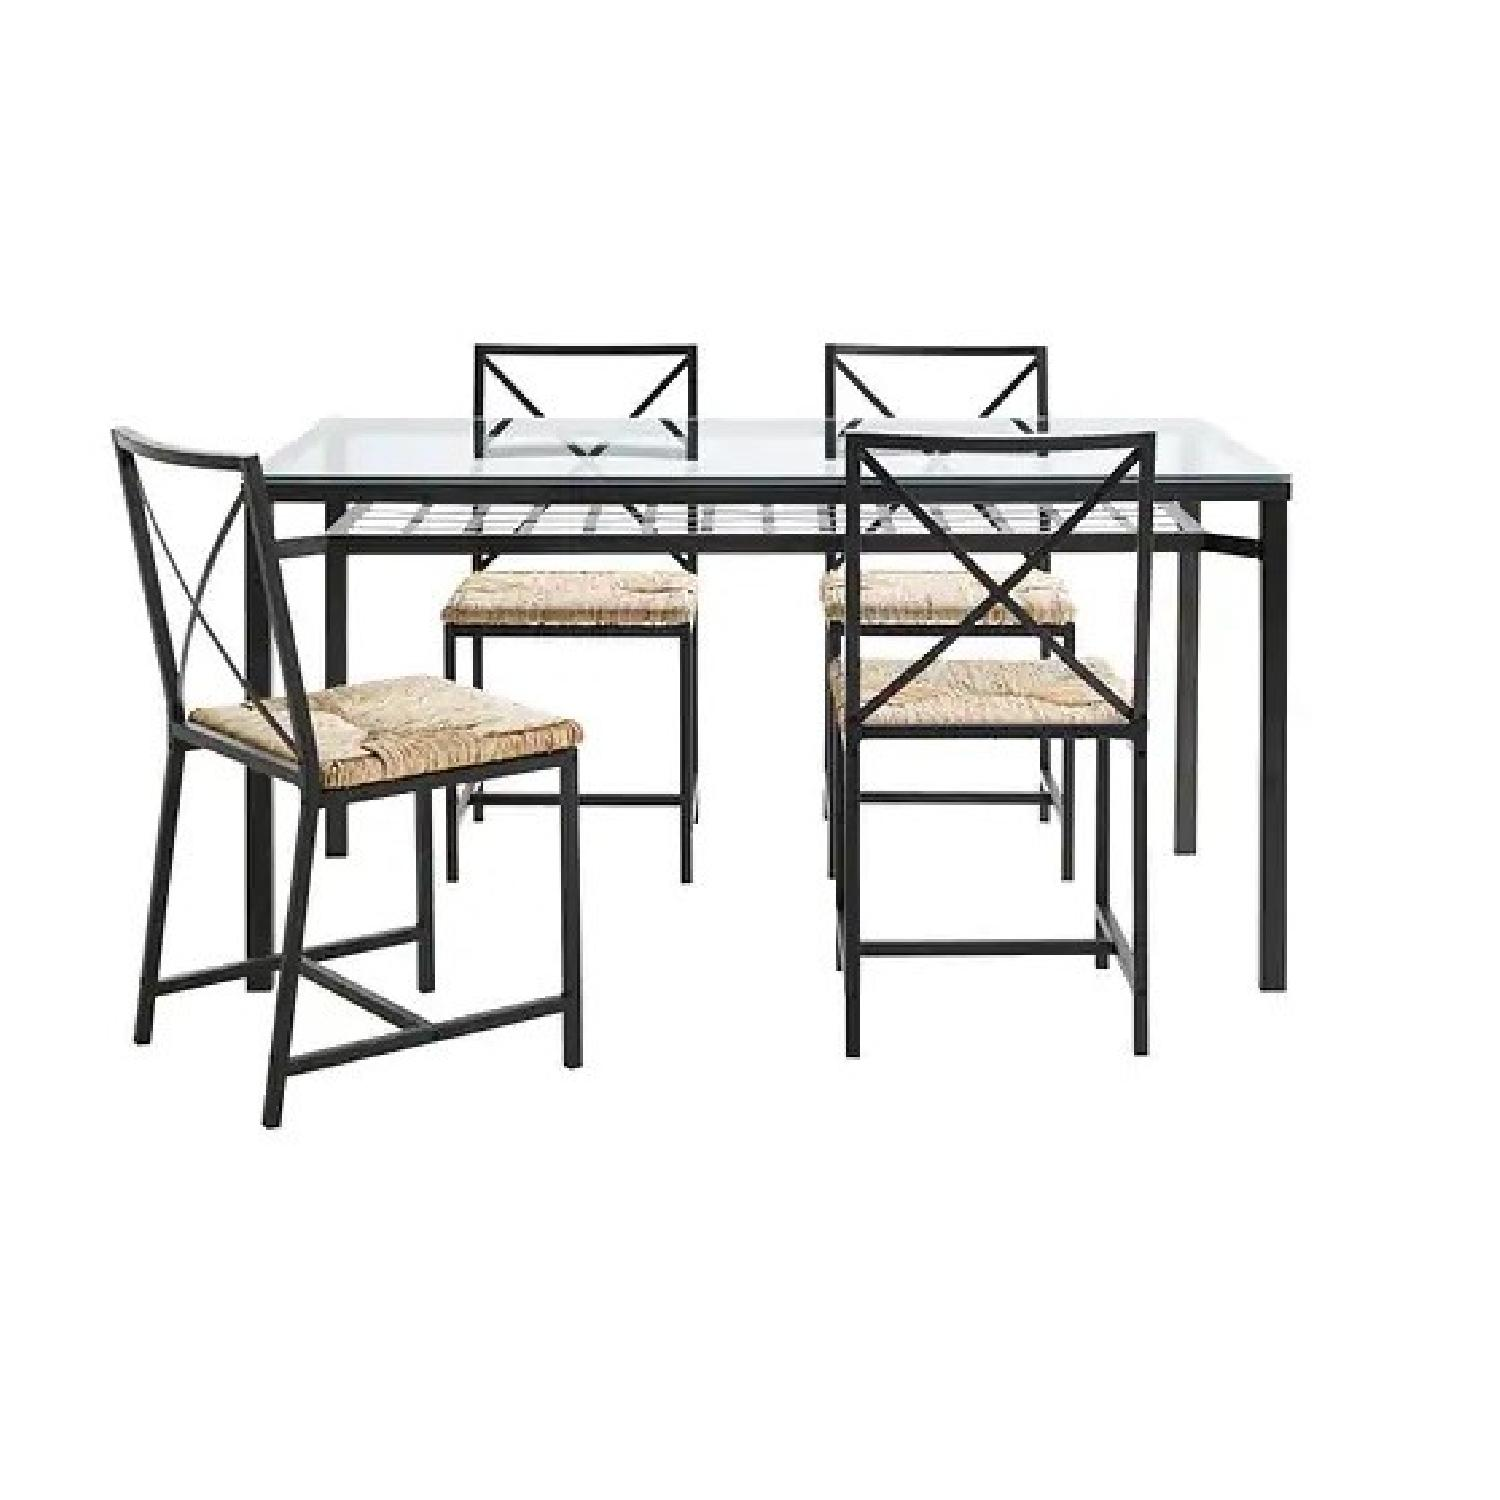 Ikea Granas Dining Table w/ 4 Chairs